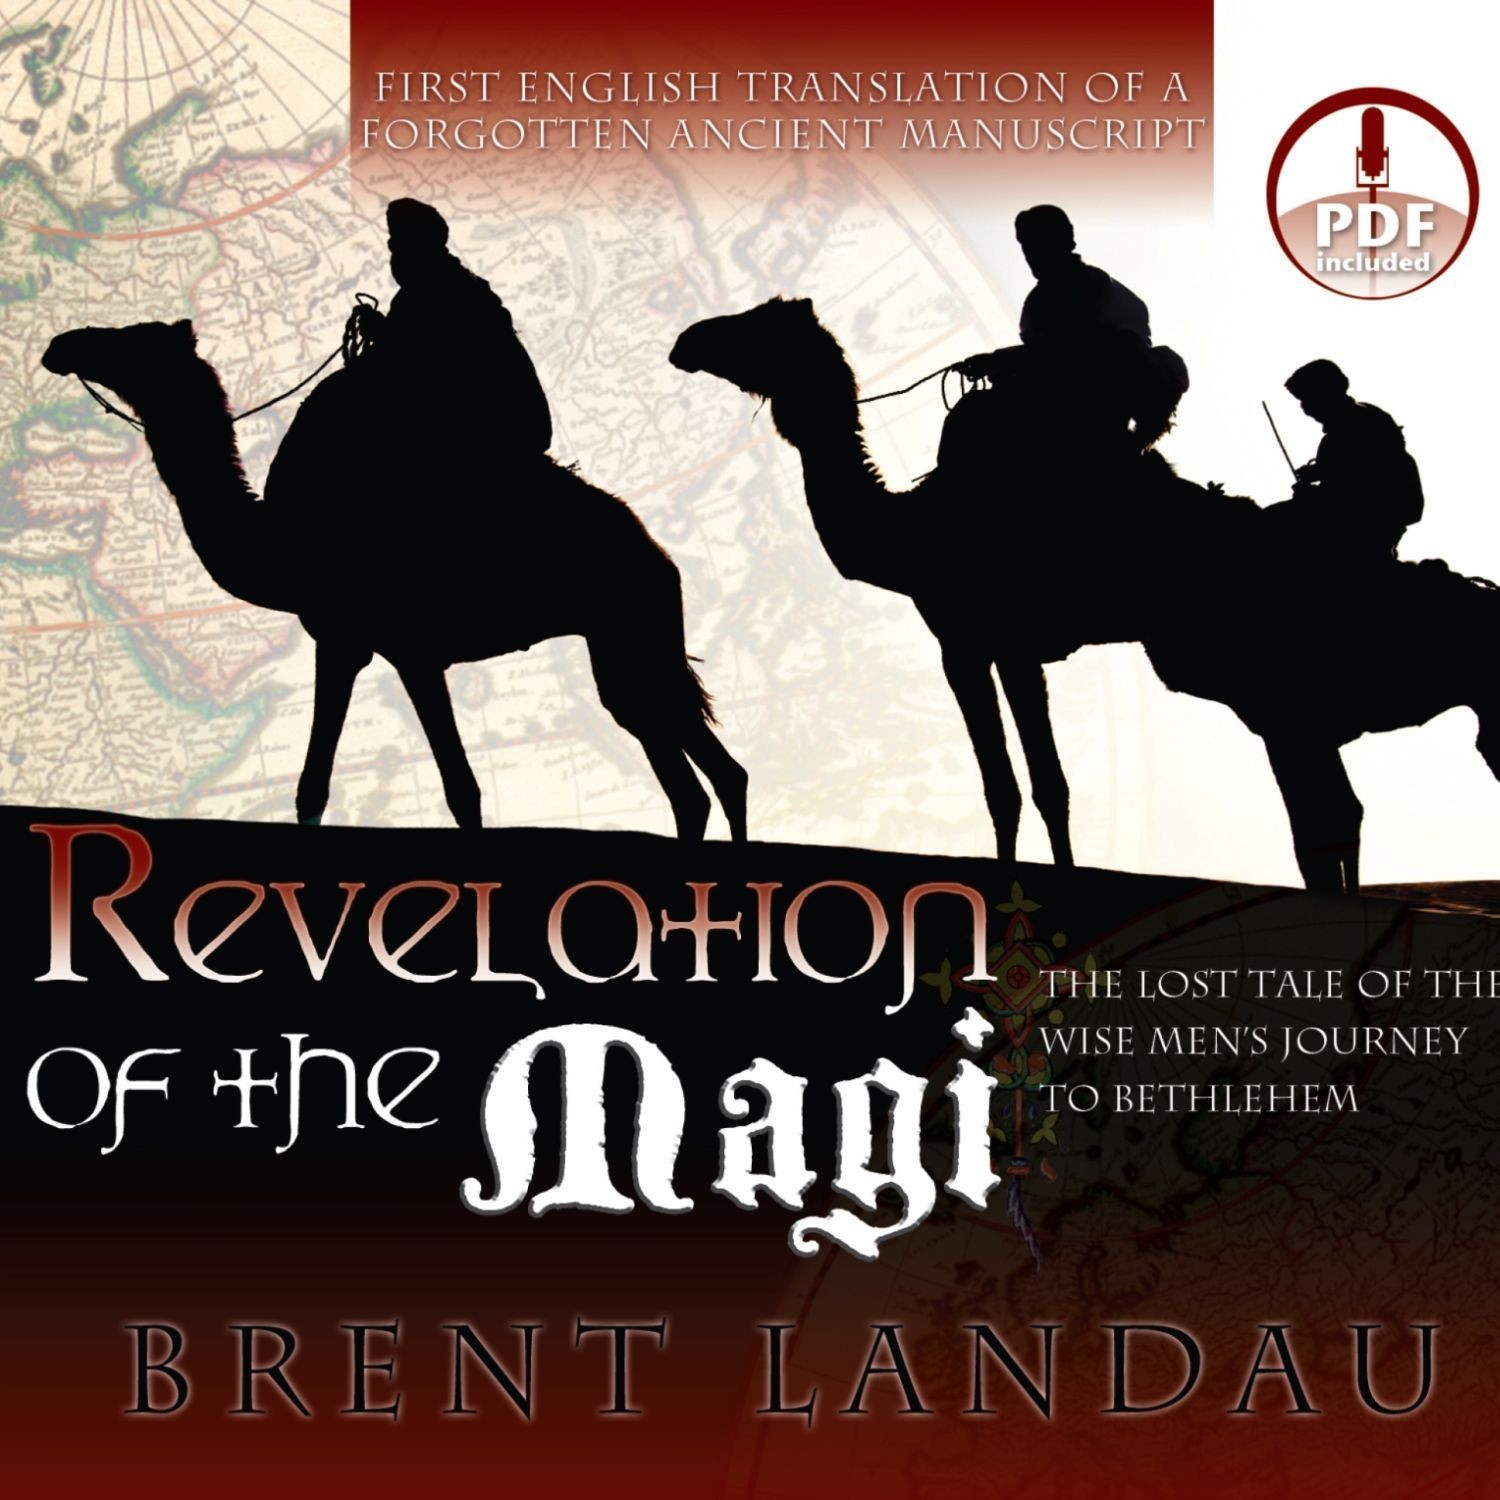 Printable Revelation of the Magi: The Lost Tale of the Wise Men's Journey to Bethlehem Audiobook Cover Art